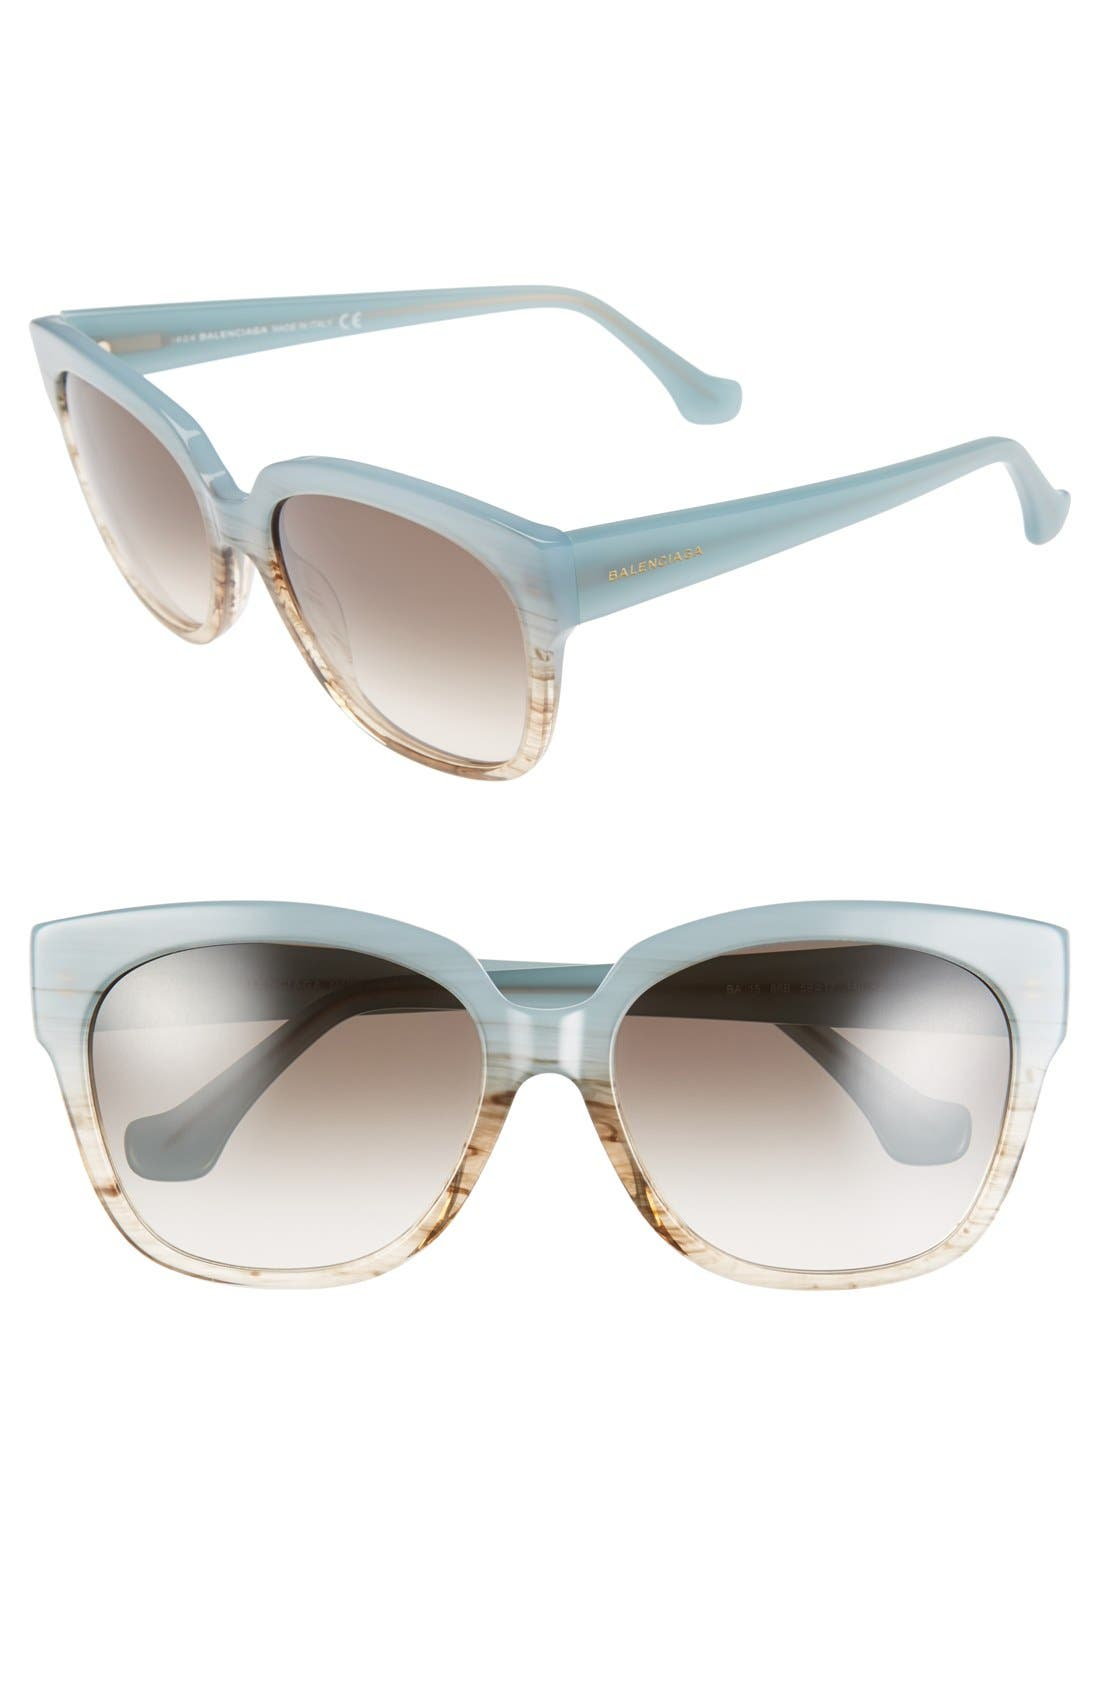 59mm 'BA0015' Sunglasses,                             Main thumbnail 1, color,                             Aquamarine Gradient/ Brown